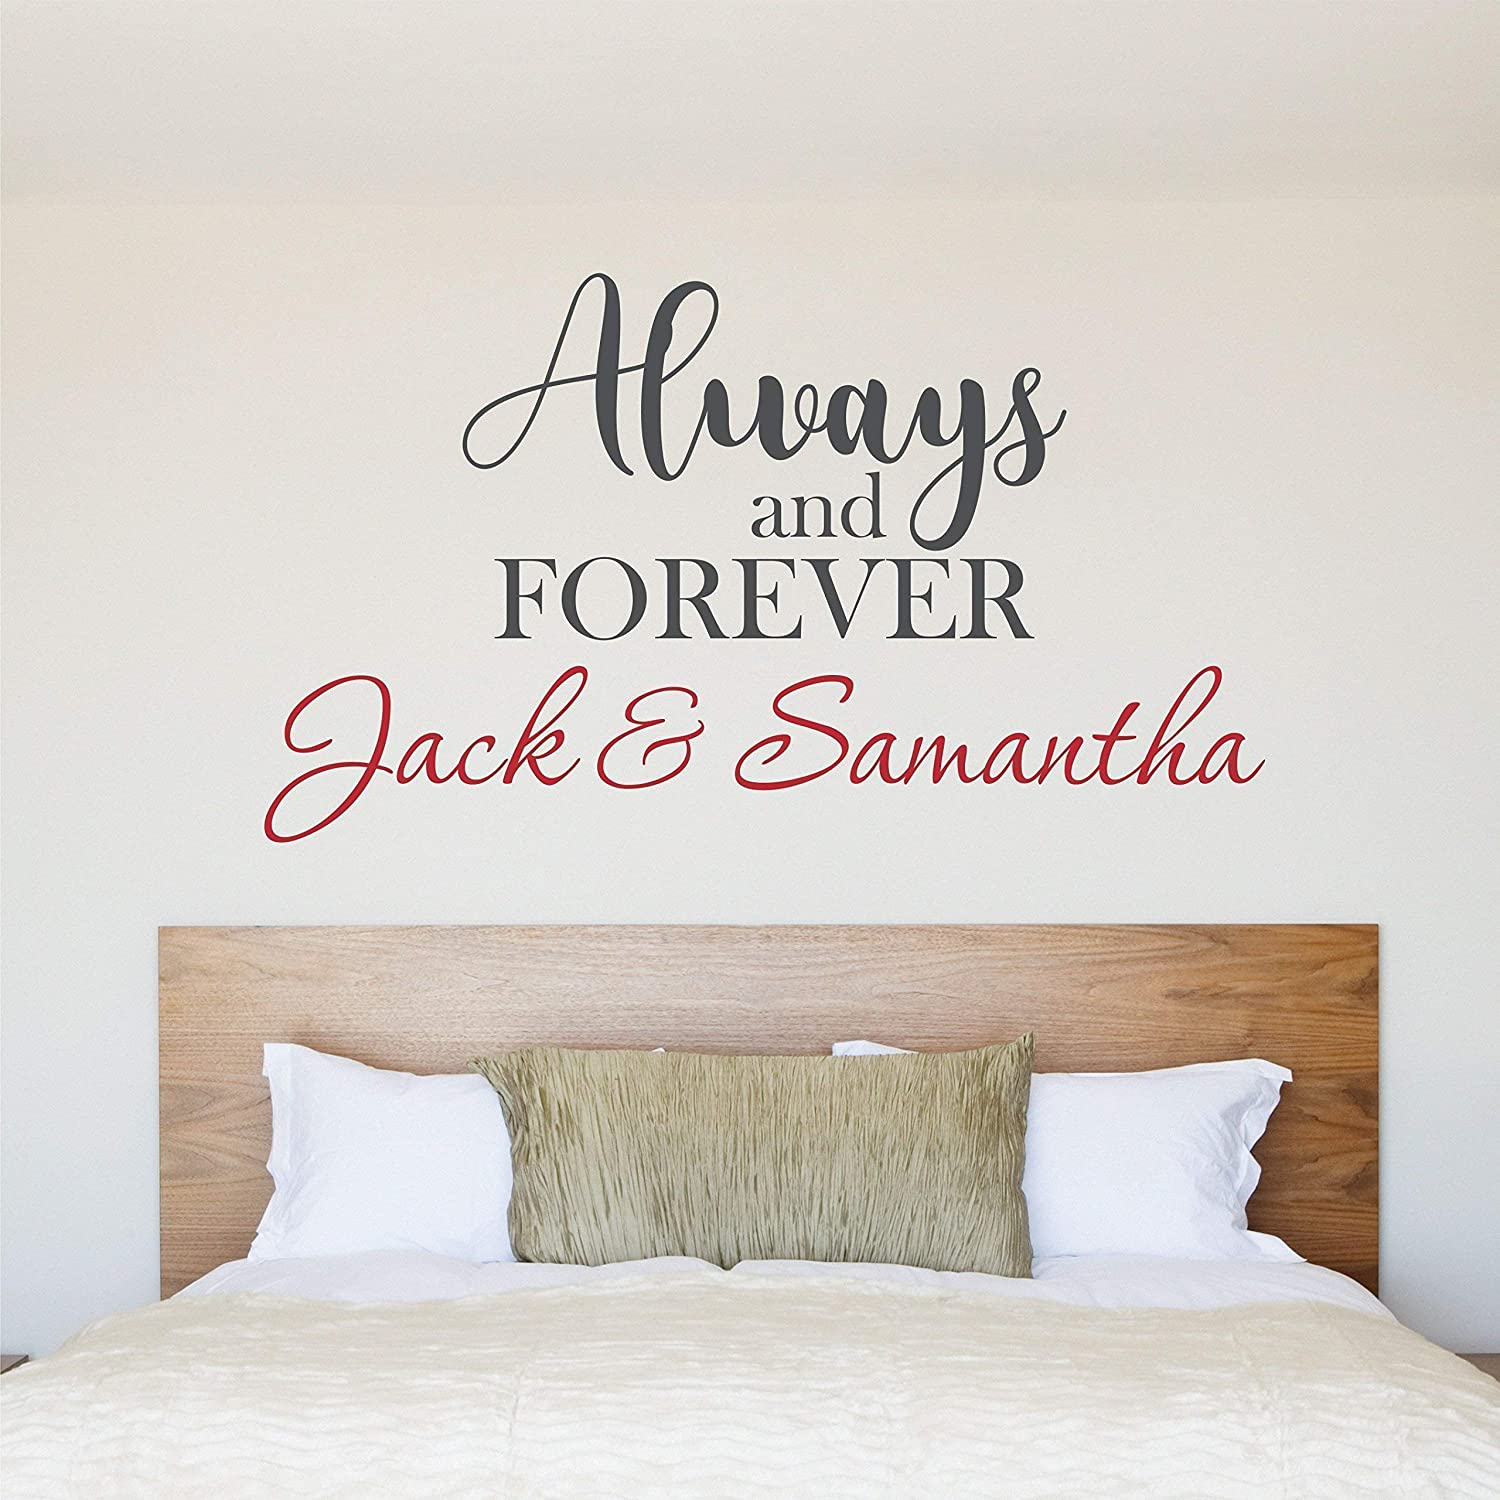 Custom Couple Name Wall Decal - Personalized Name Wall Sticker - Custom Name Wall Sign - Monogram Stencil